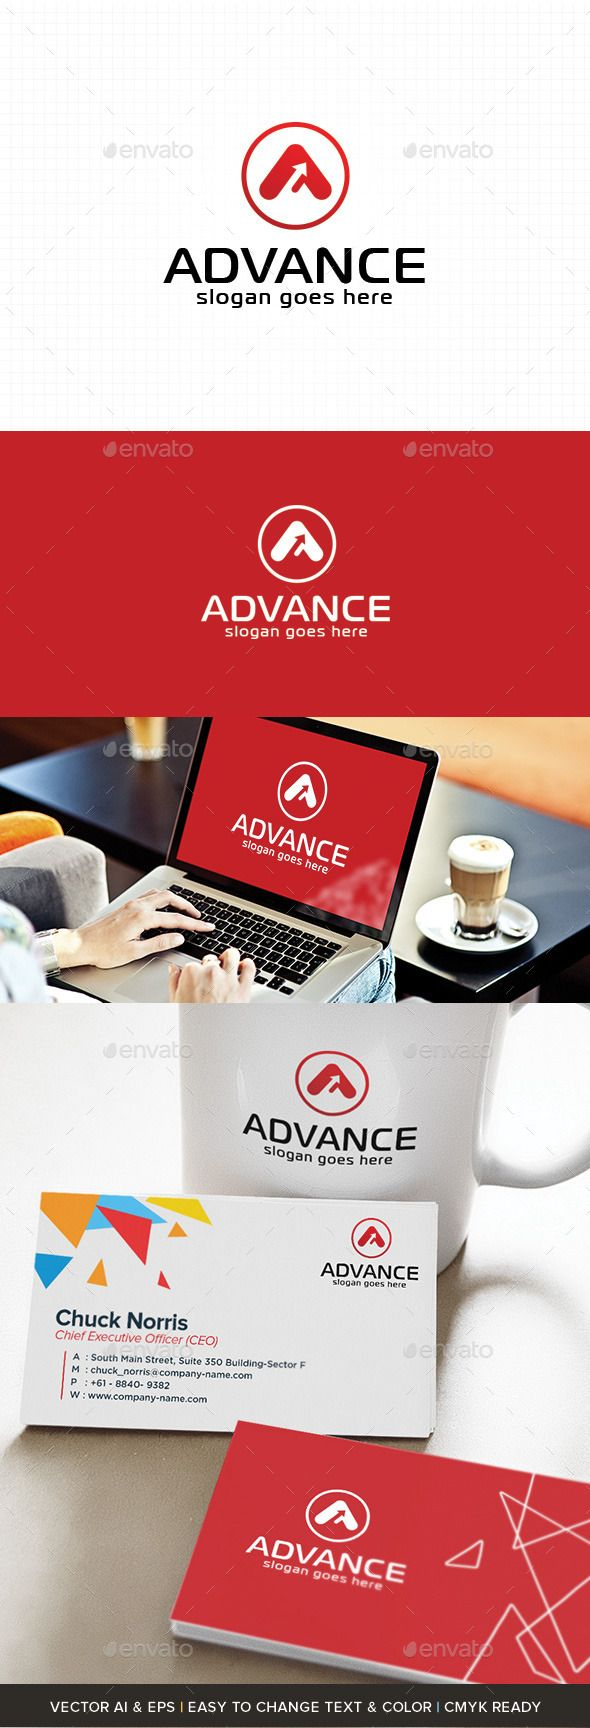 A Letter Logo | Advance (AI Illustrator, Resizable, CS, a, accounting, advance, agriculture, air, application, architectural, art, attorney, automotive, aviation, brand, computer, first, identity, internet, logo, mobile, modern, movement, red, service, simple, strong, tech, technology, top)